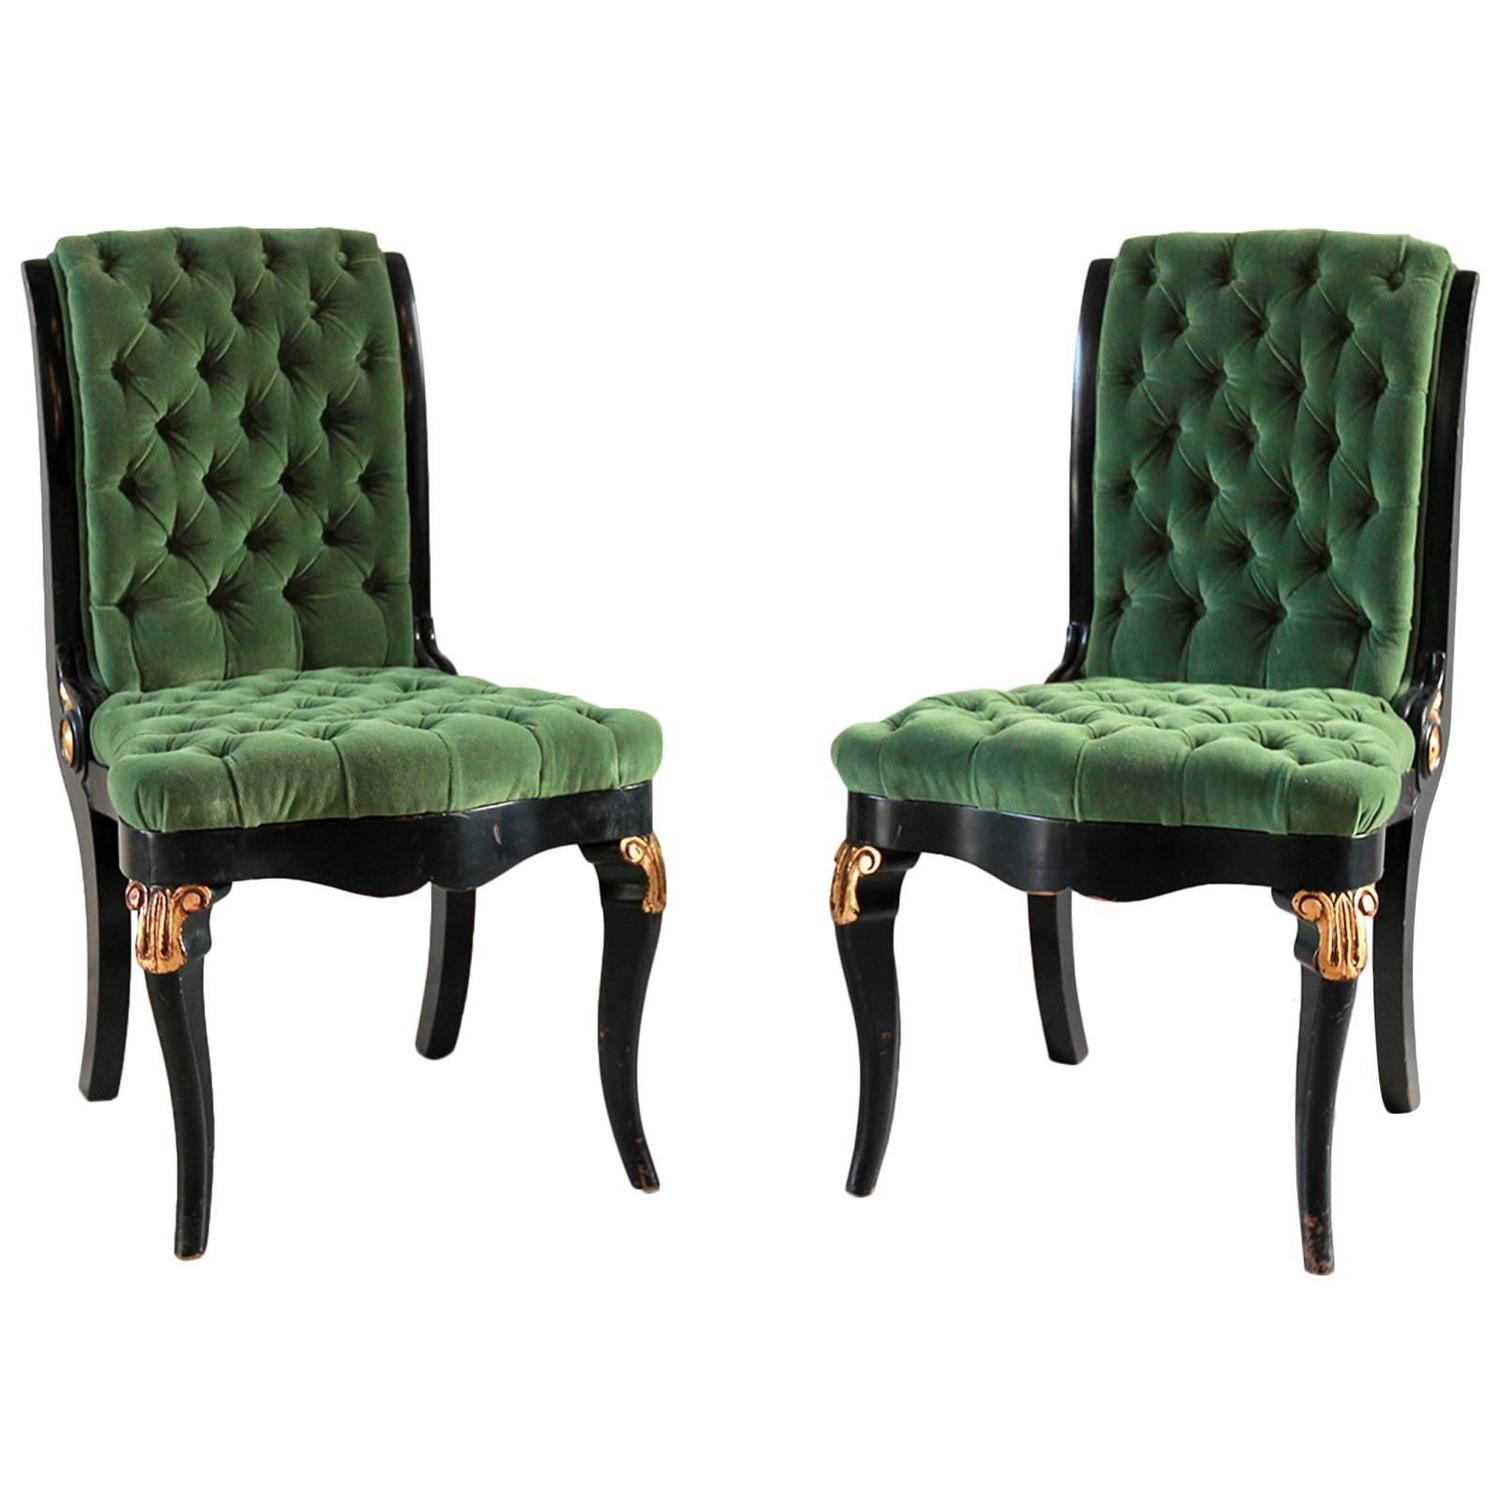 Gold Velvet Chair Black And Gold Painted Regency Chair Upholstered In Green